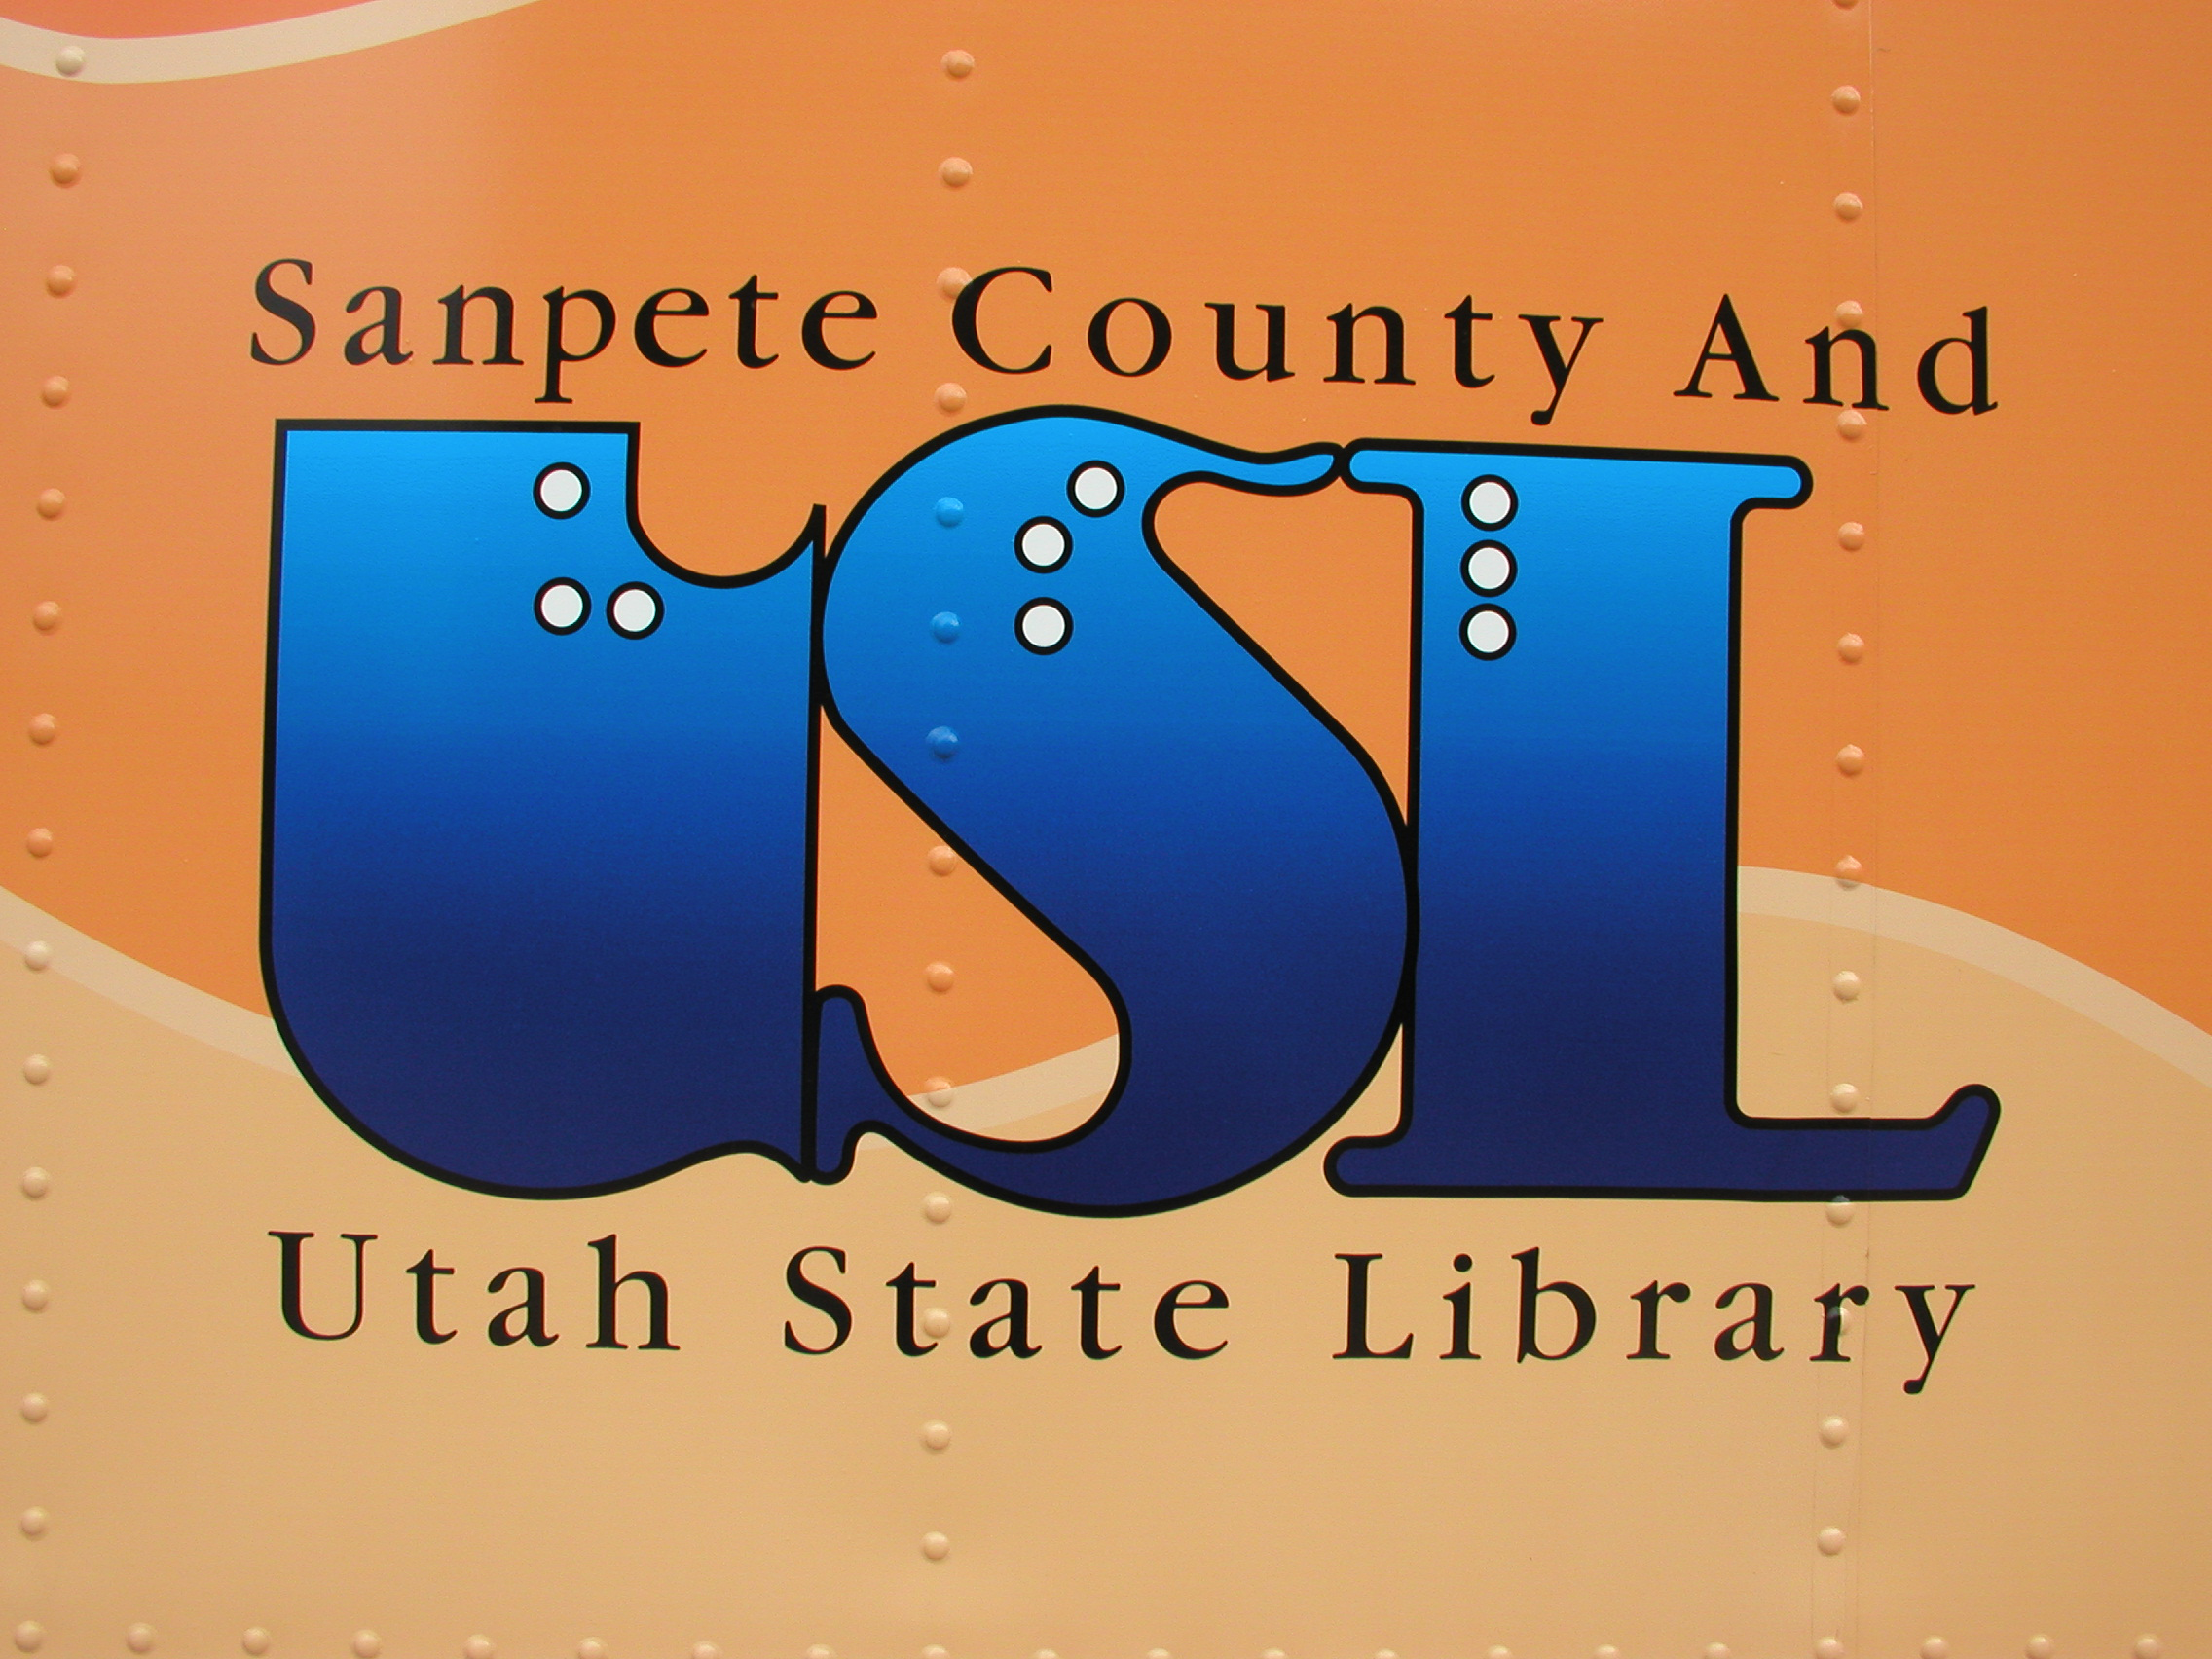 sanpete county dating Accouncements subscribe to posts announcements posted oct 27, 2013, 5:16 pm by sheron larsen updated oct 27, 2013, 8:15 pm.